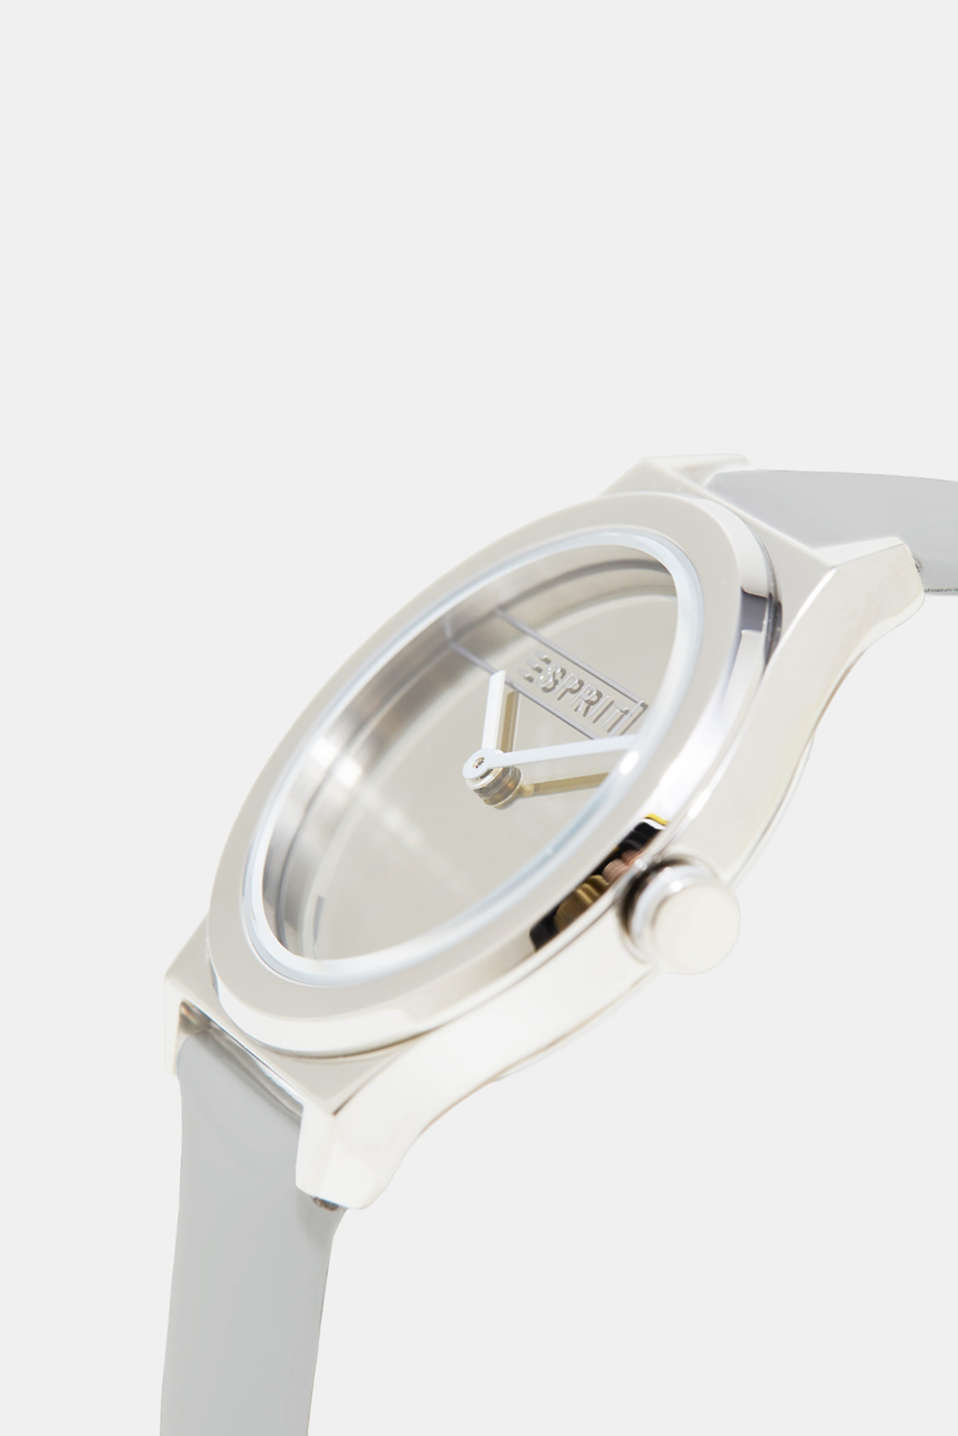 Watch with a mirrored dial